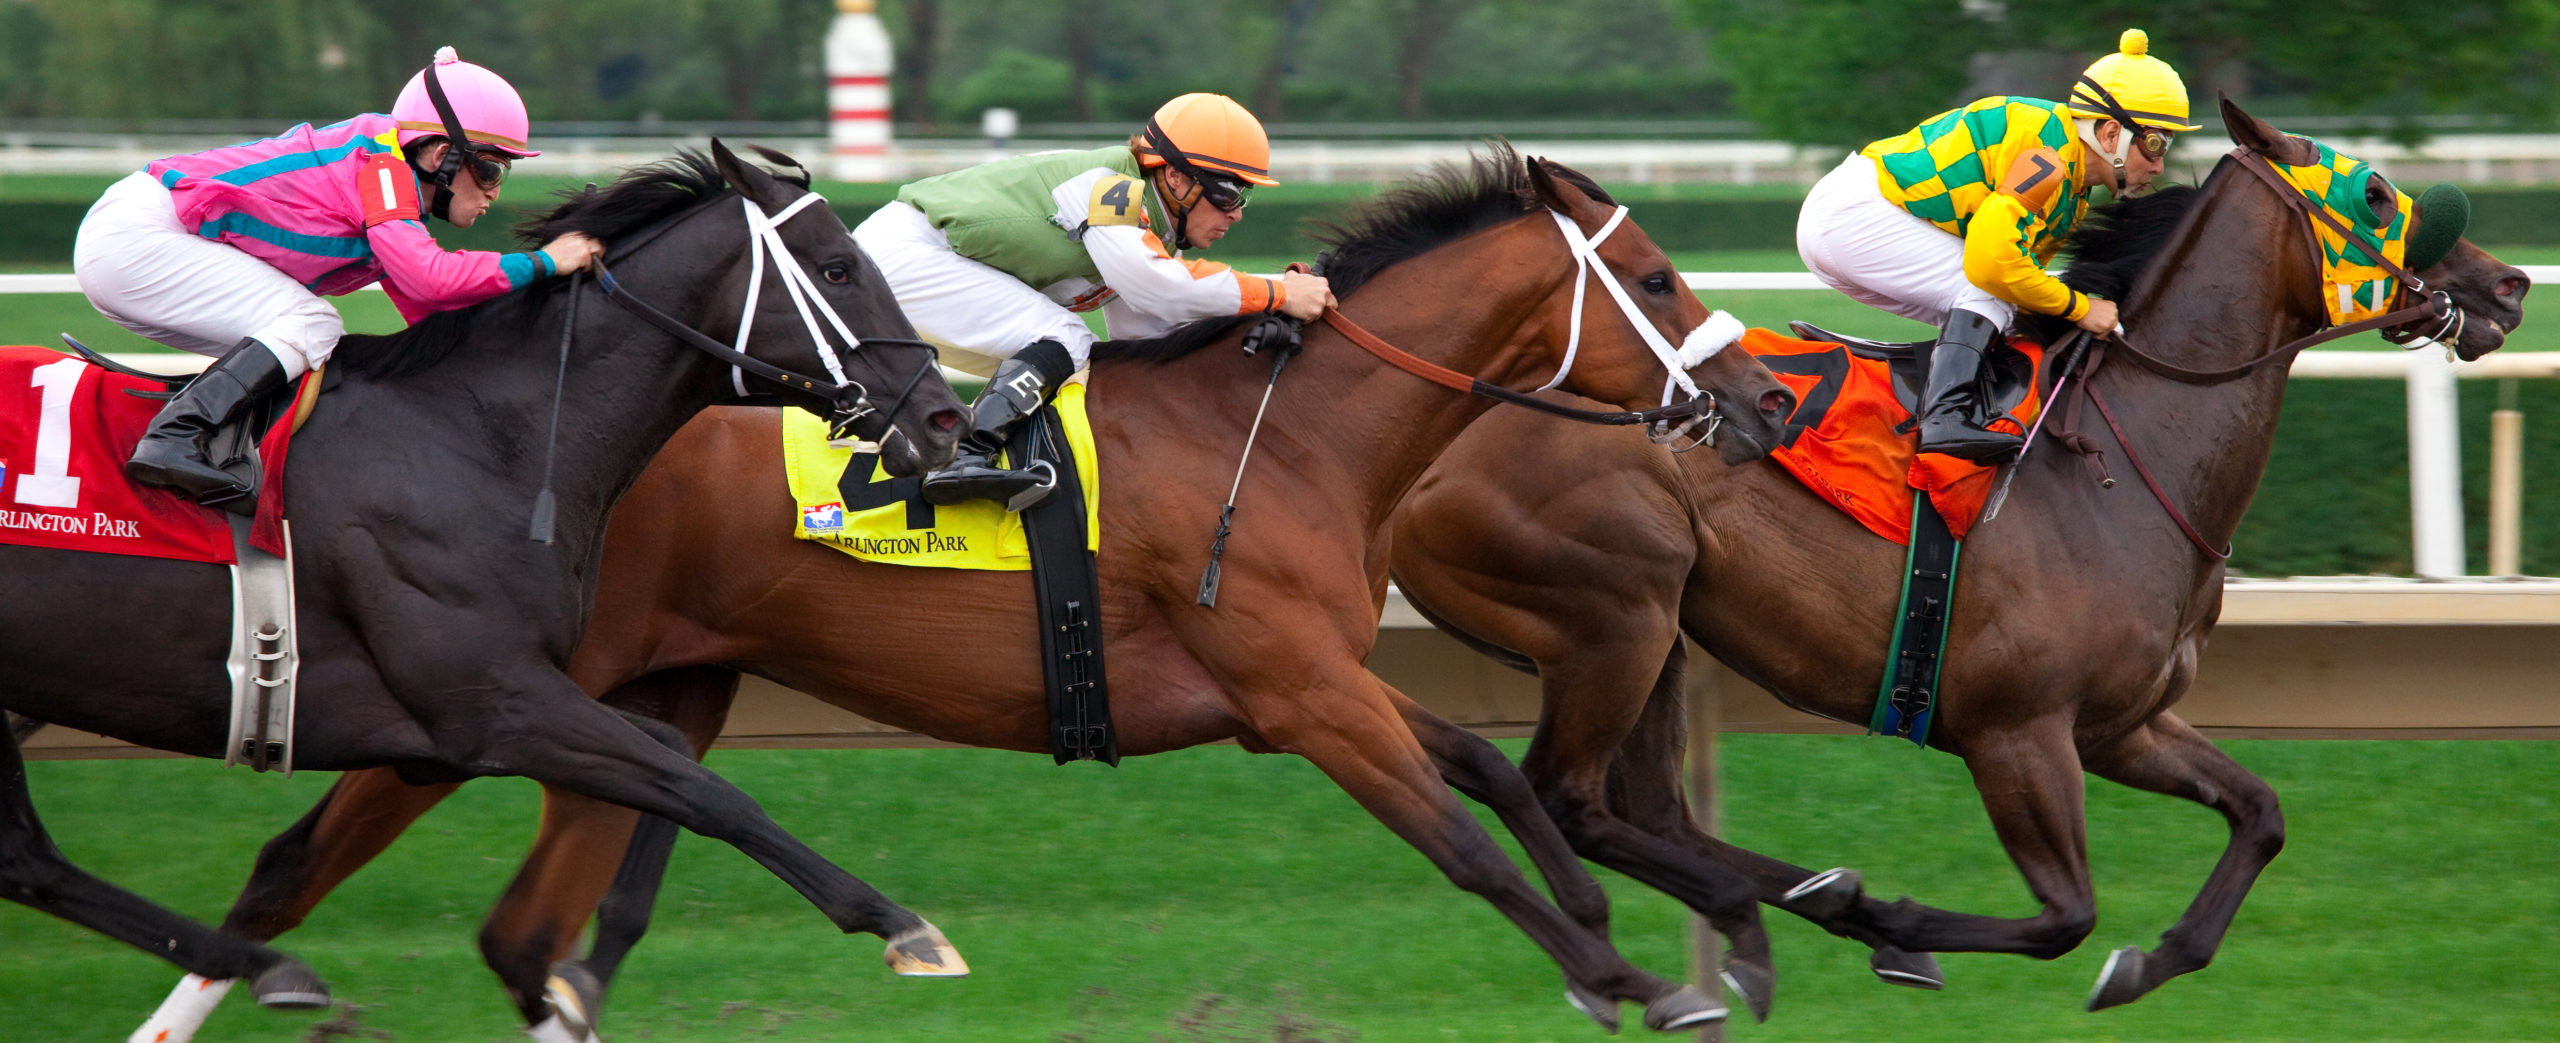 How to Claim a Race Horse?